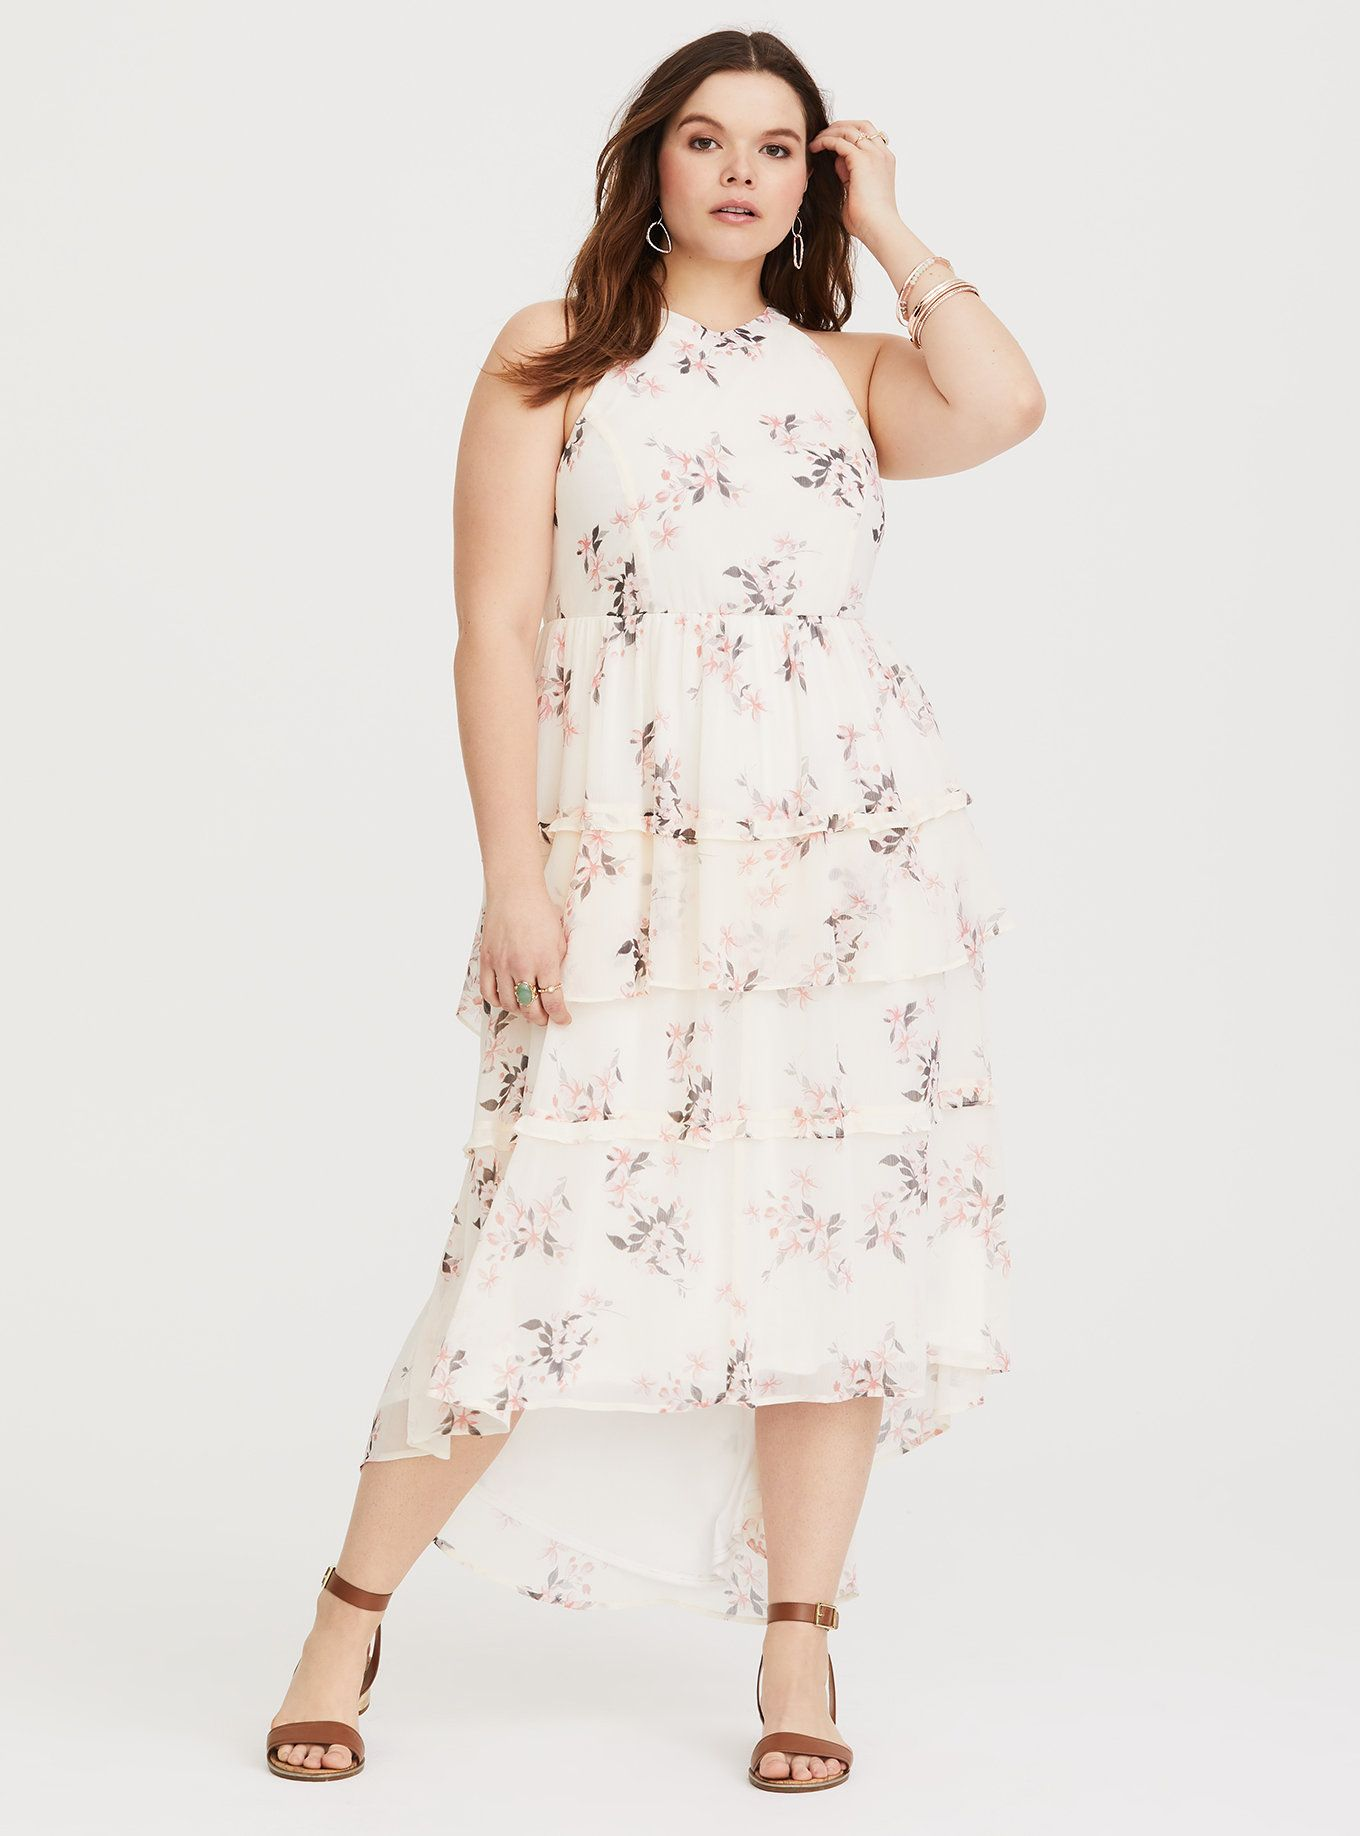 d5cf1556a10 Welcome to Plus Size Trendspotting Thursday Here on Vintage   Curvy! This  week s trend is a High style look that s got us all shook